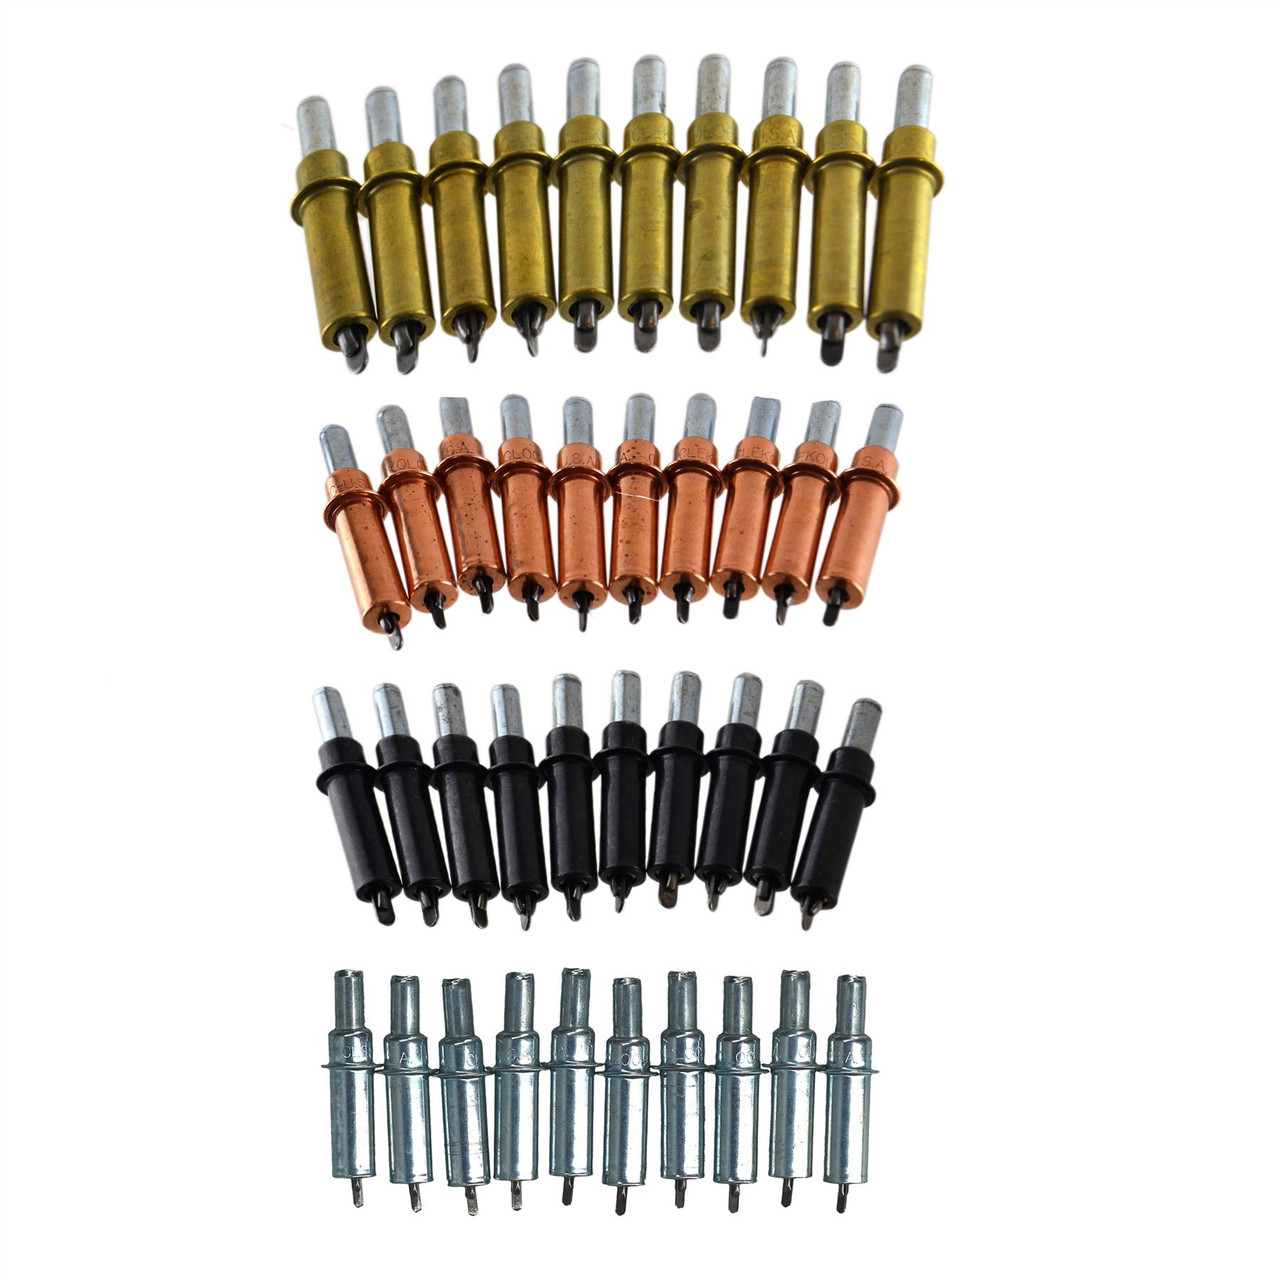 Sheet Metal Fasteners Restoration Clamps Grips Cleco Fastener Complete Kit